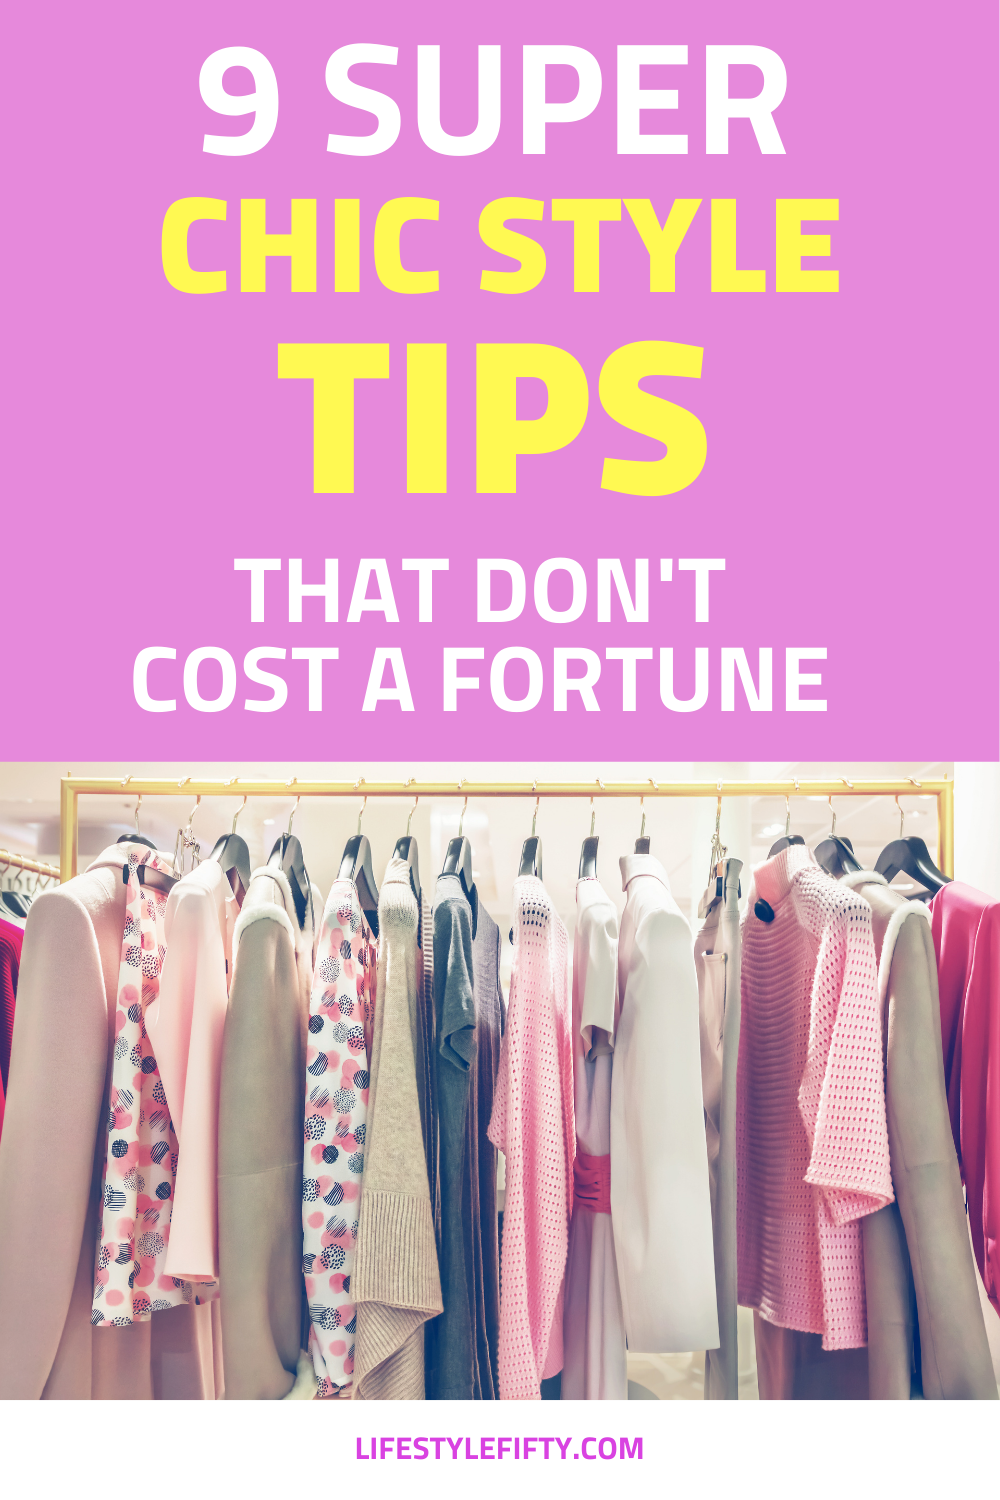 Clothes on hangers image, and text overlay for post 9 super chic style tips that don't cost a fortune.